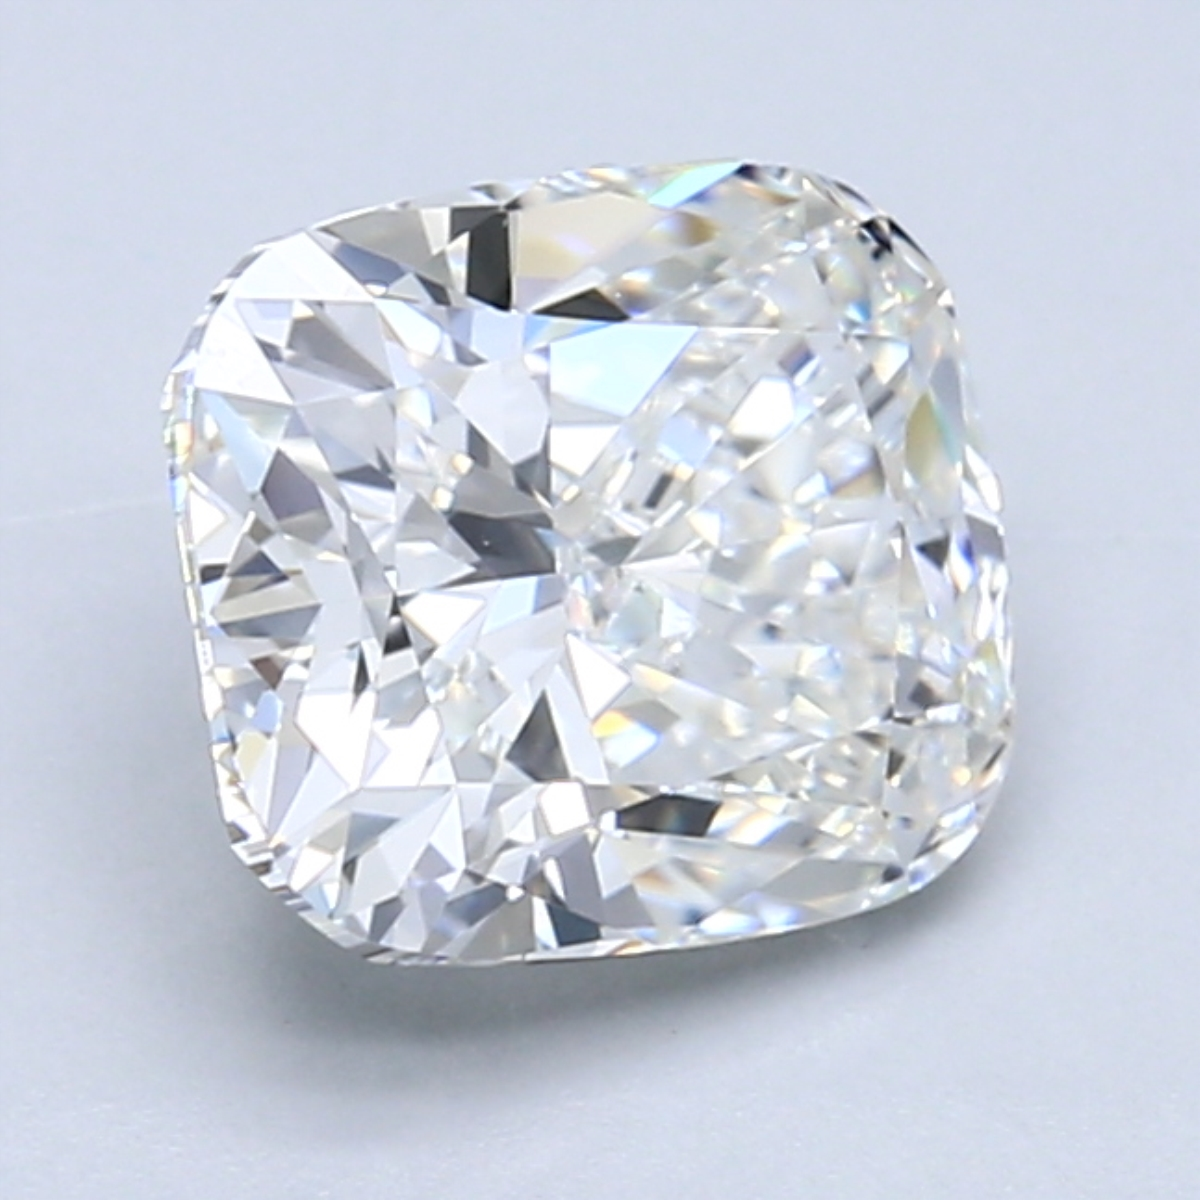 2.50 carat Cushion Diamond, Very Good cut, graded by the GIA laboratories.